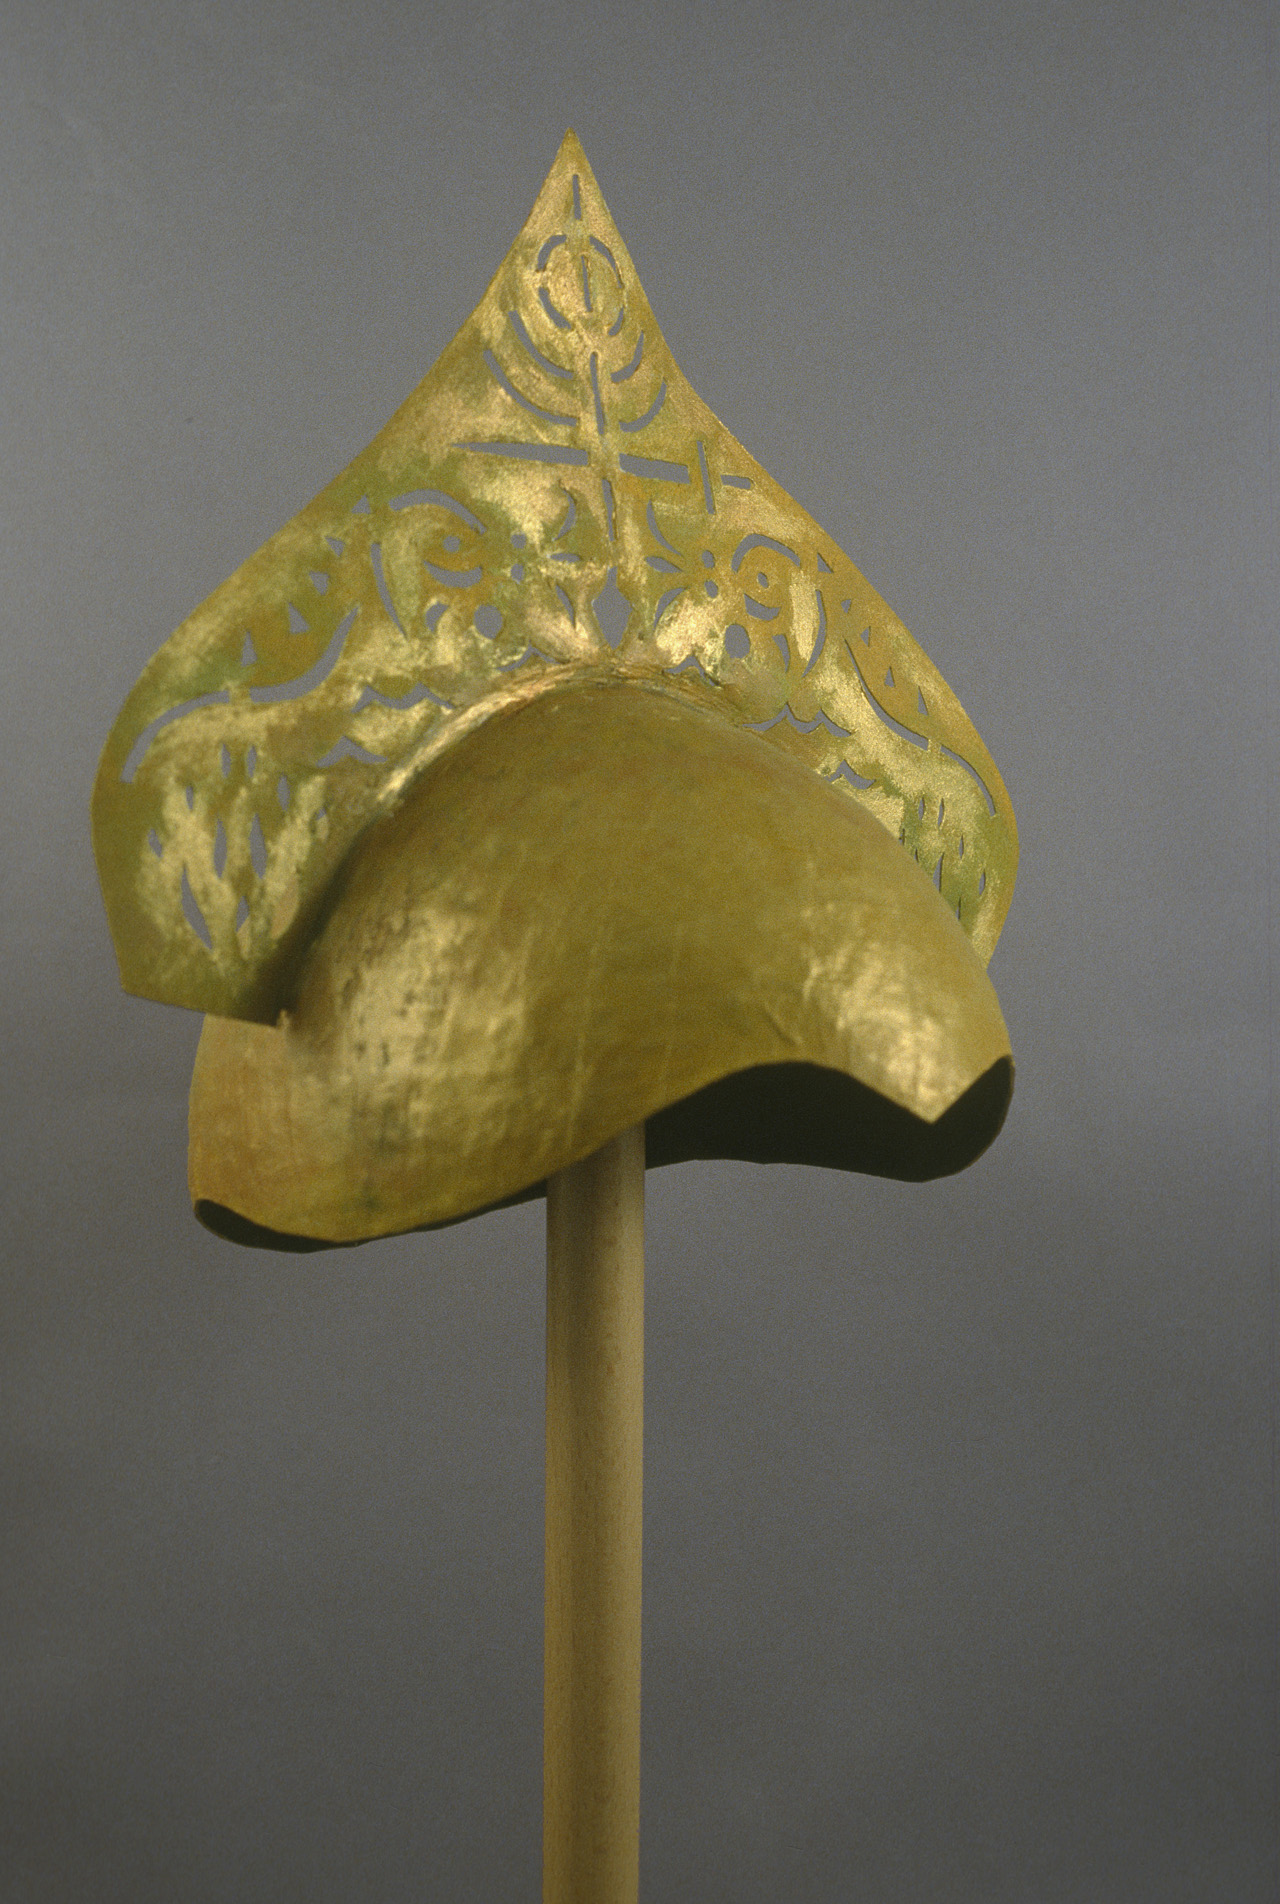 46. Royal Helmet 1999 alt. view M. Stein